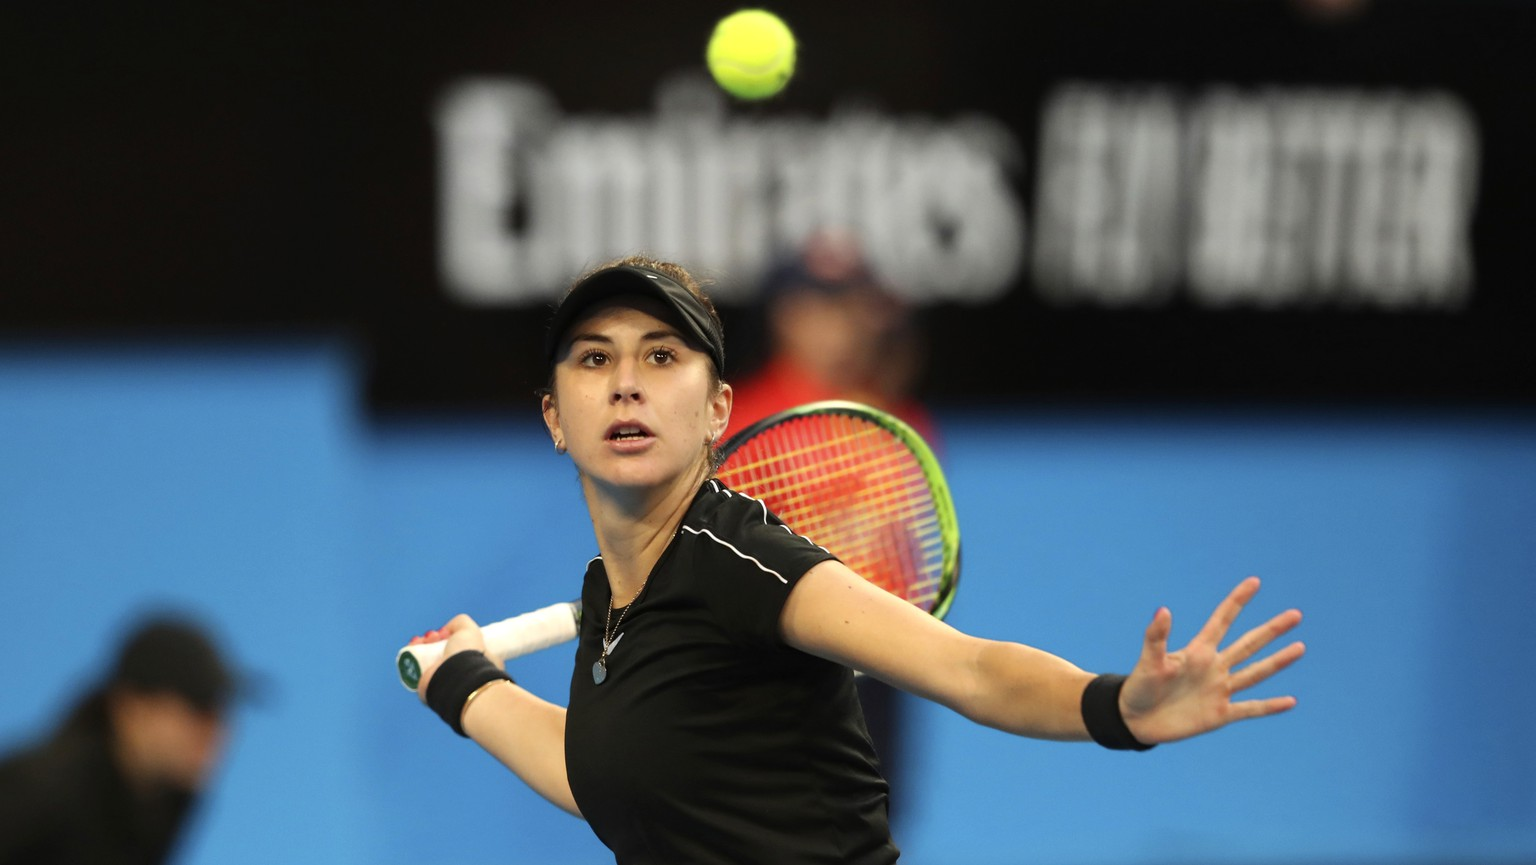 Switzerland's Belinda Bencic plays a shot during her match against Angelique Kerber of Germany in the final of the Hopman Cup tennis tournament in Perth, Australia, Saturday Jan. 5, 2019. (AP Photo/Trevor Collens)